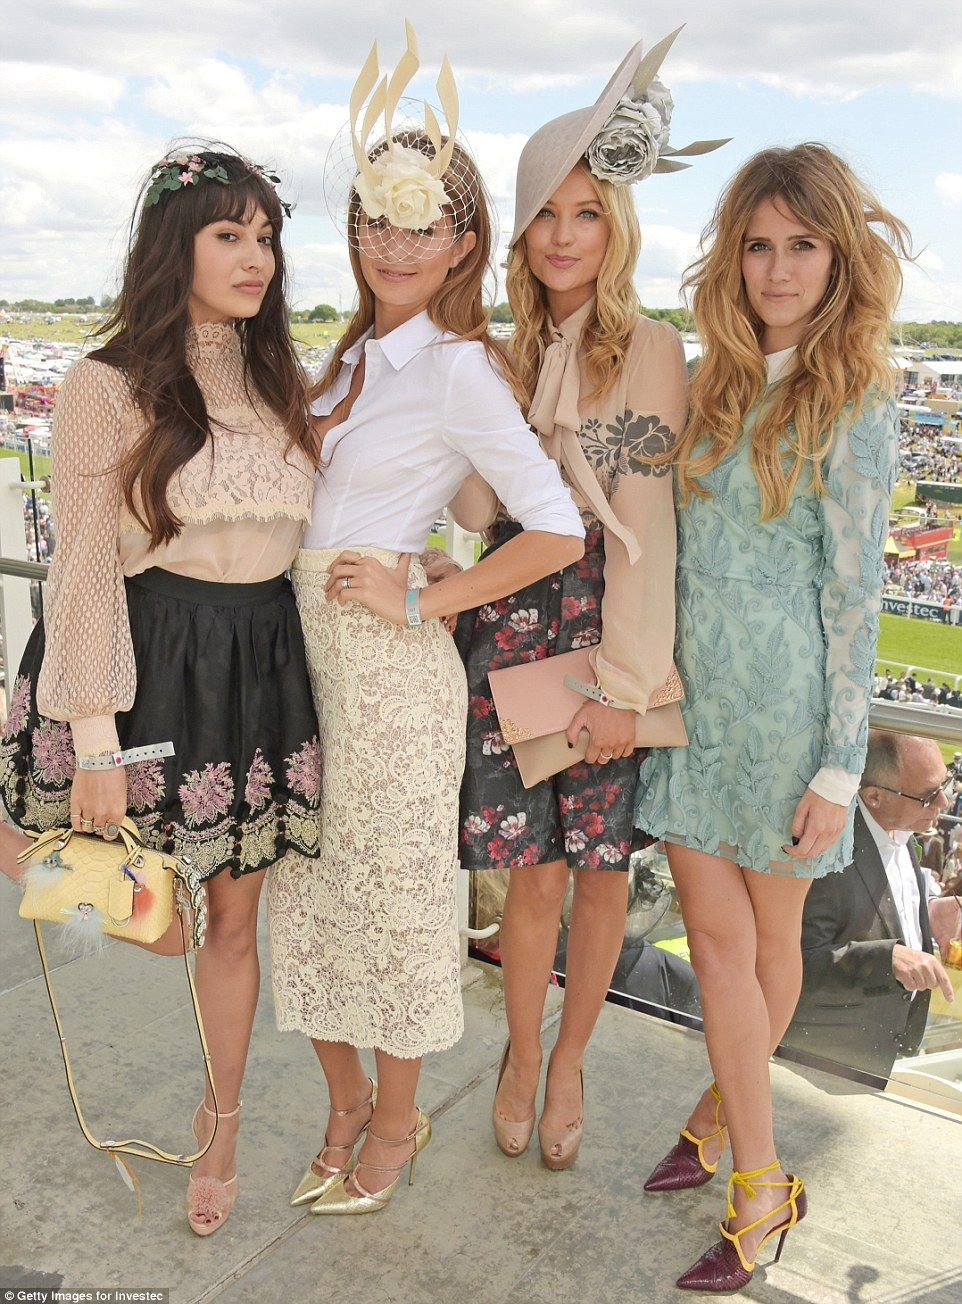 All dressed up for Derby day - and the sun is shining at Epsom | Derby  attire, Derby outfits, Kentucky derby outfit